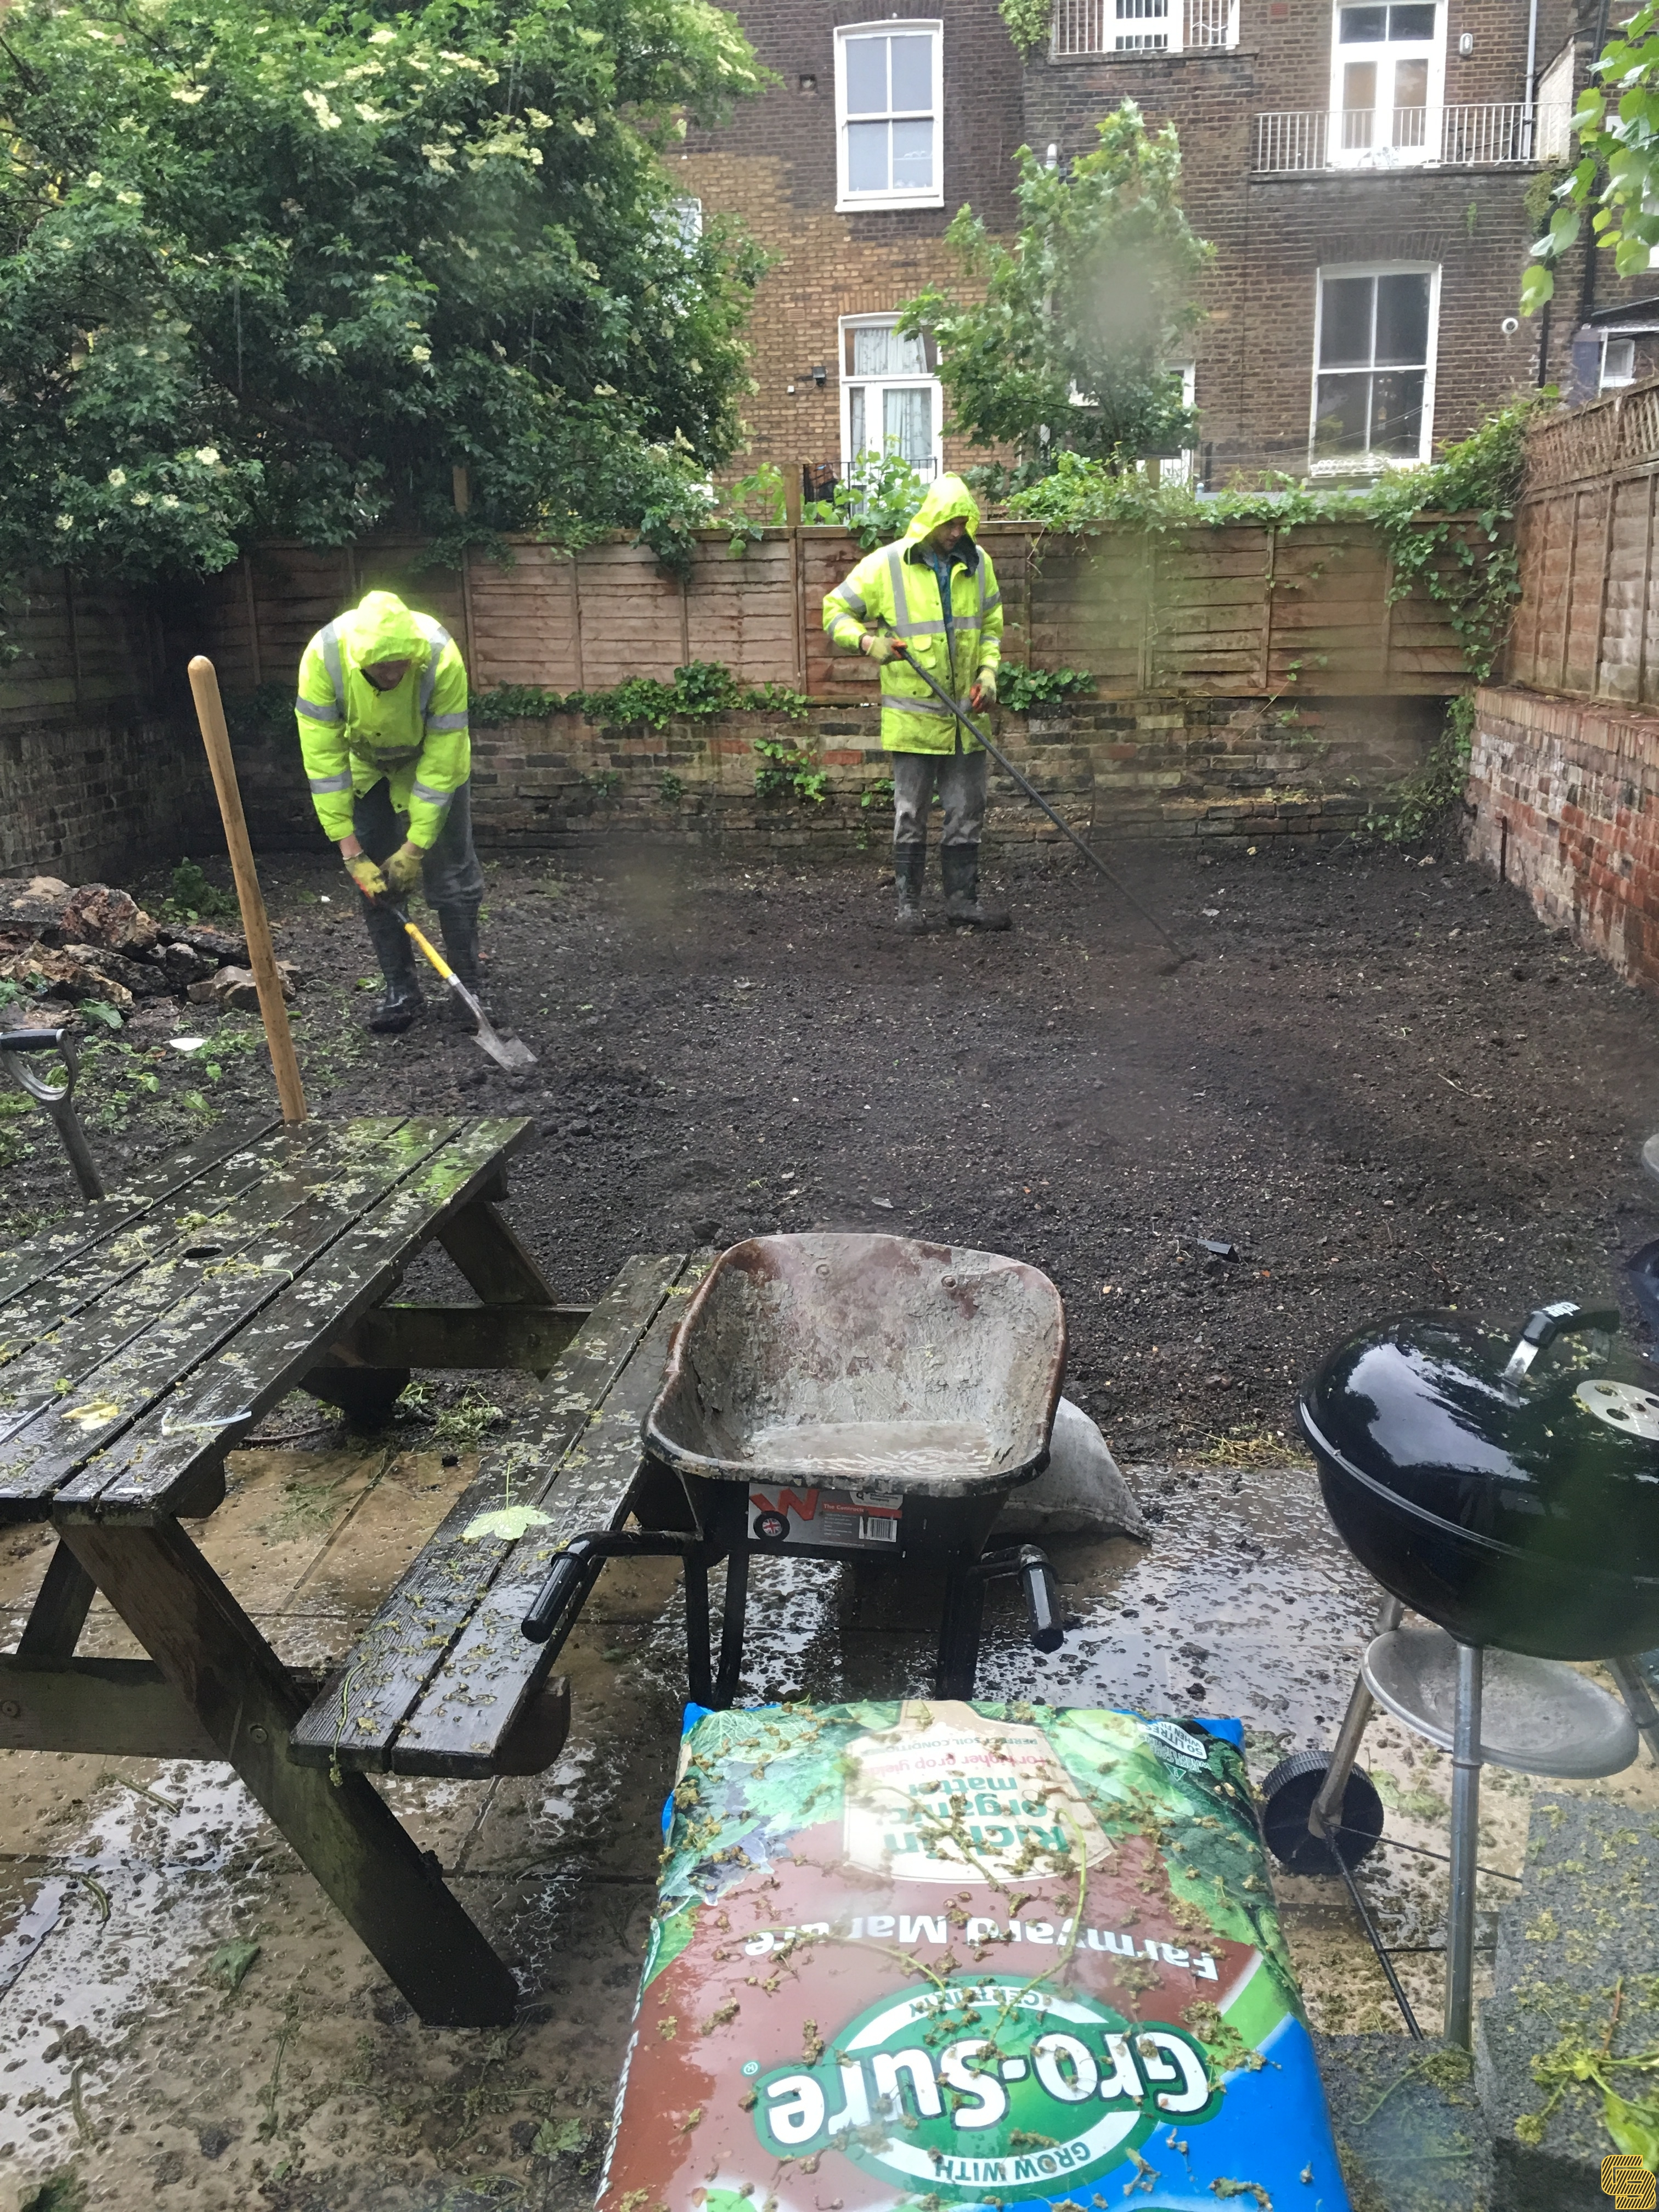 Rear Garden Renovation (Preparation)